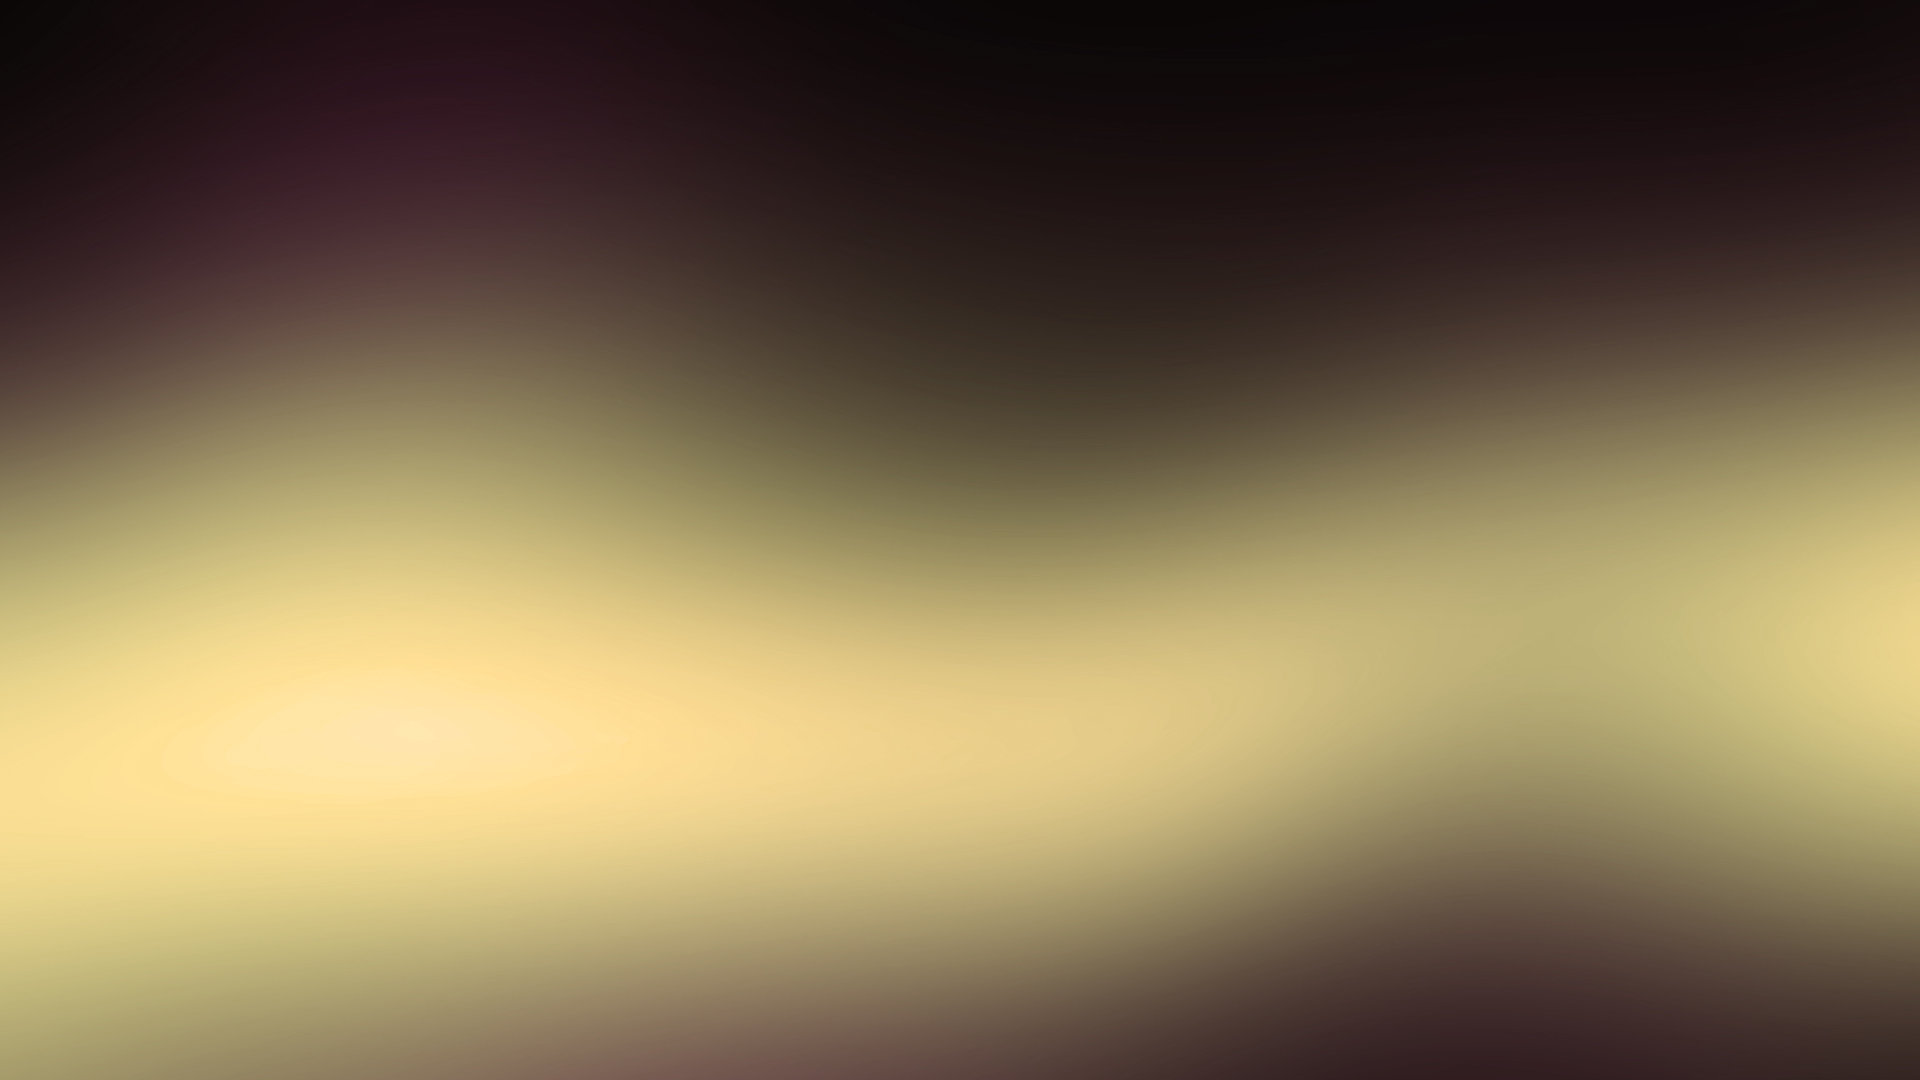 Free download Gradient background ID:442432 hd 1920x1080 for PC